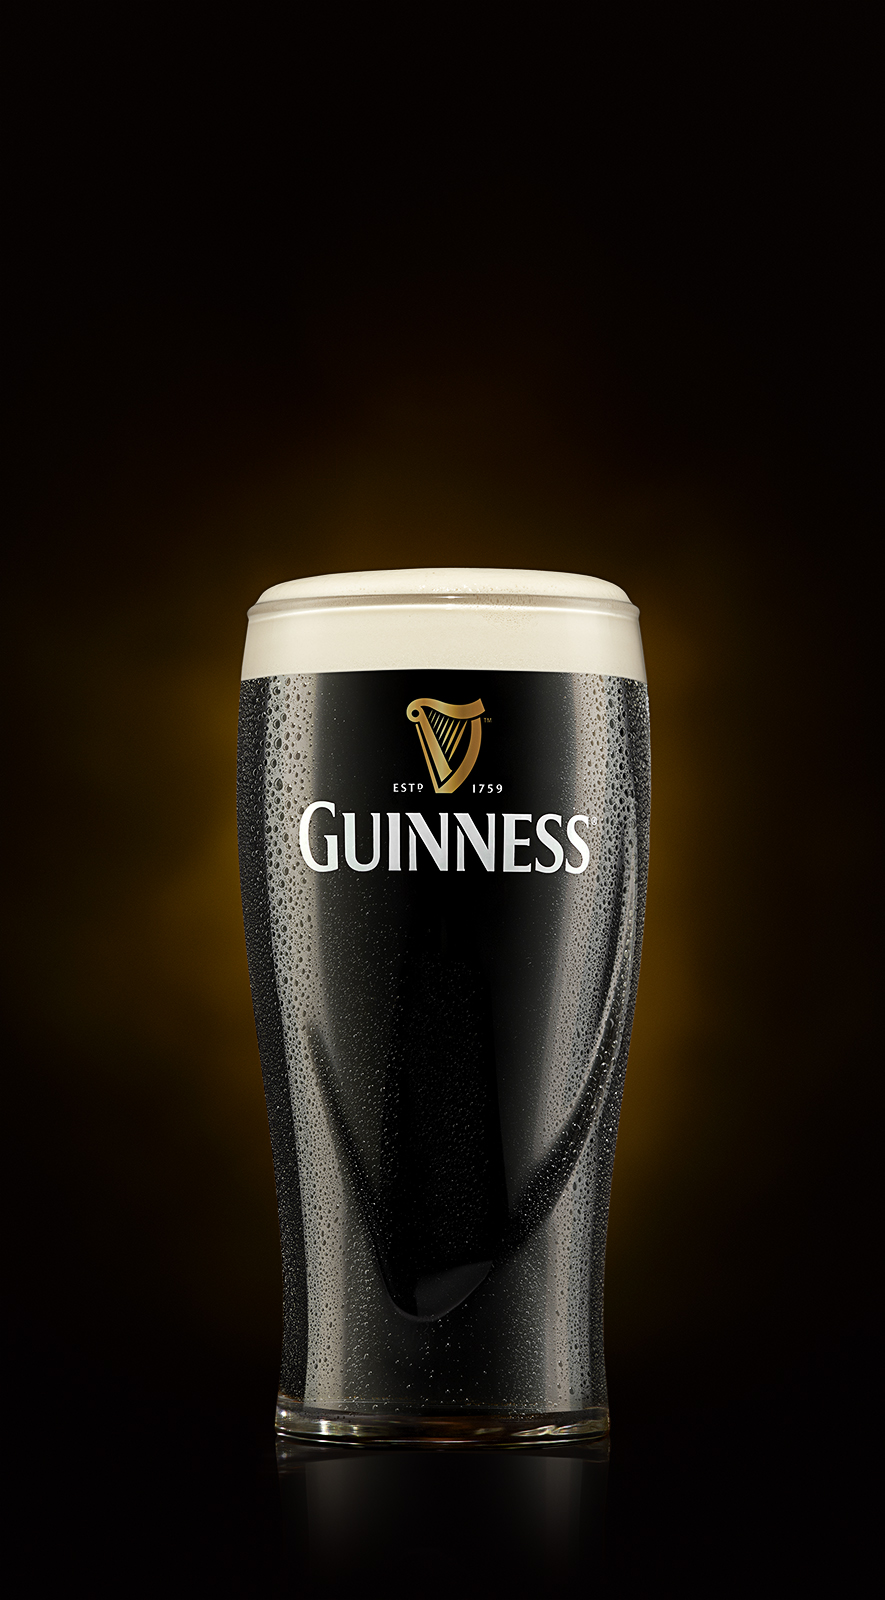 Guinness draught iconic irish draft guinness - Guinness beer images ...